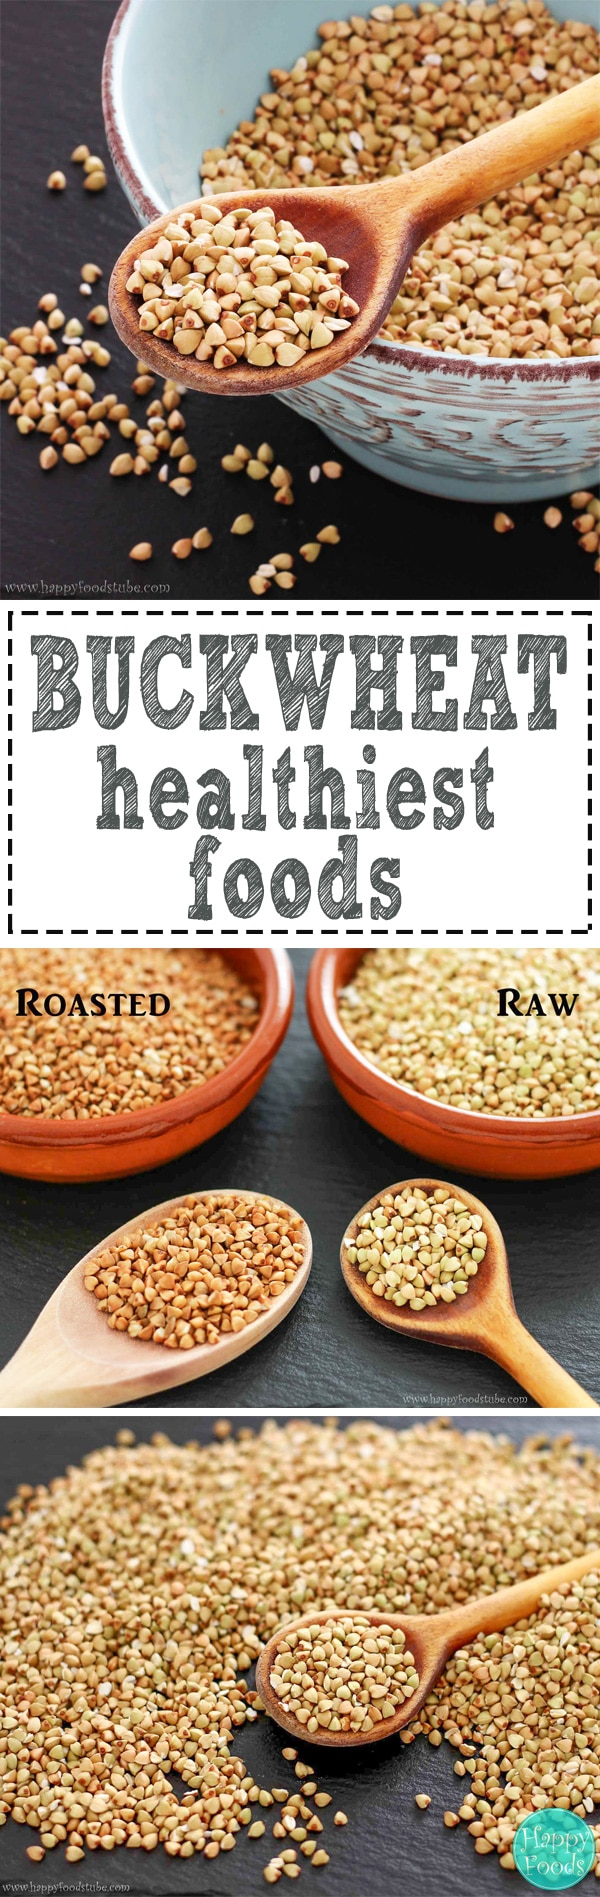 Buckwheat - One of the healthiest foods. It is consumed in many countries around the word. The seeds can be either raw (light greenish color) or roasted (brown color). | happyfoodstube.com